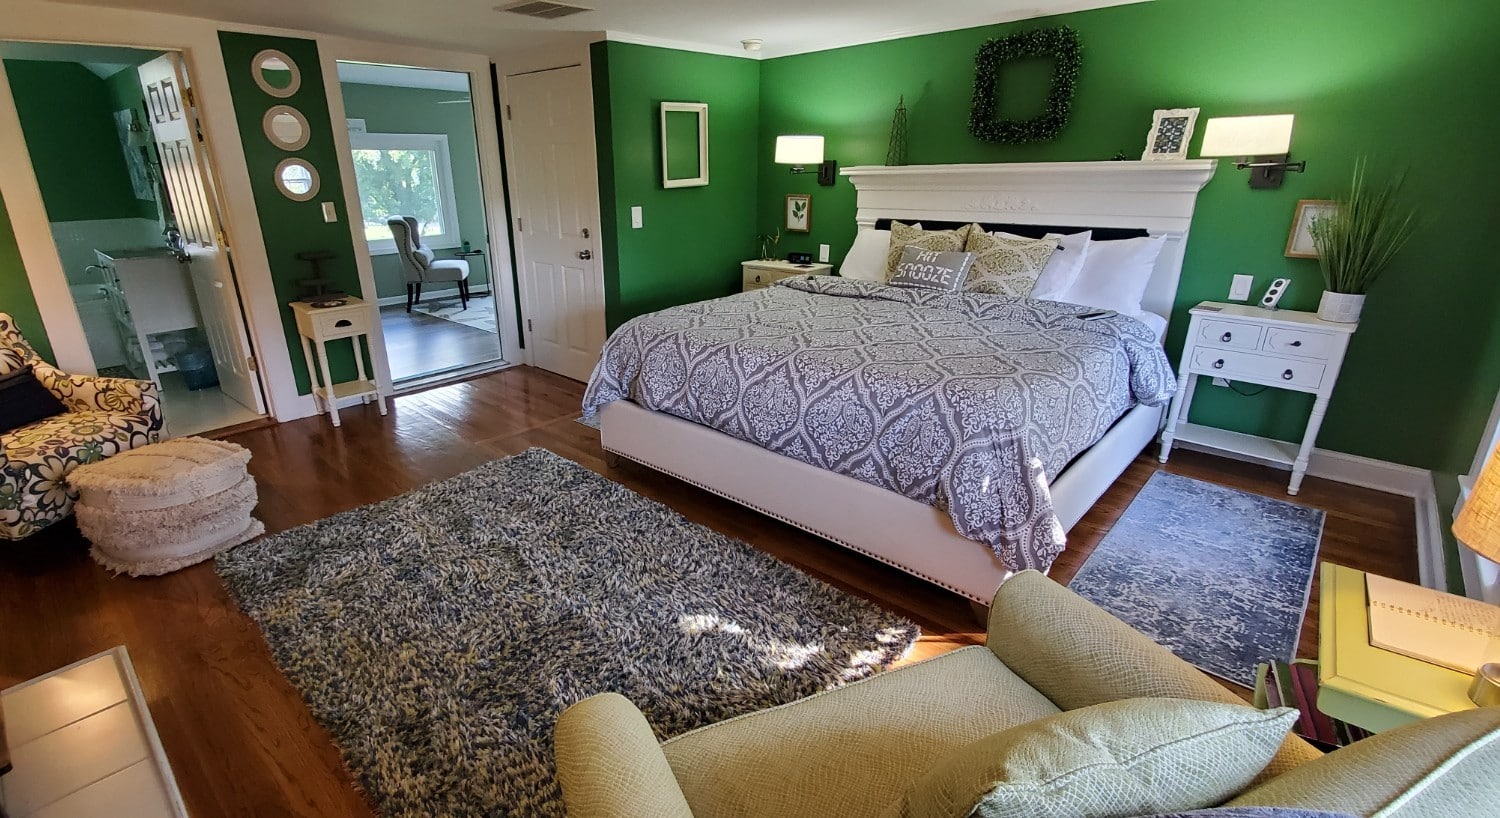 Dark green walls, hardwood floors white headboard